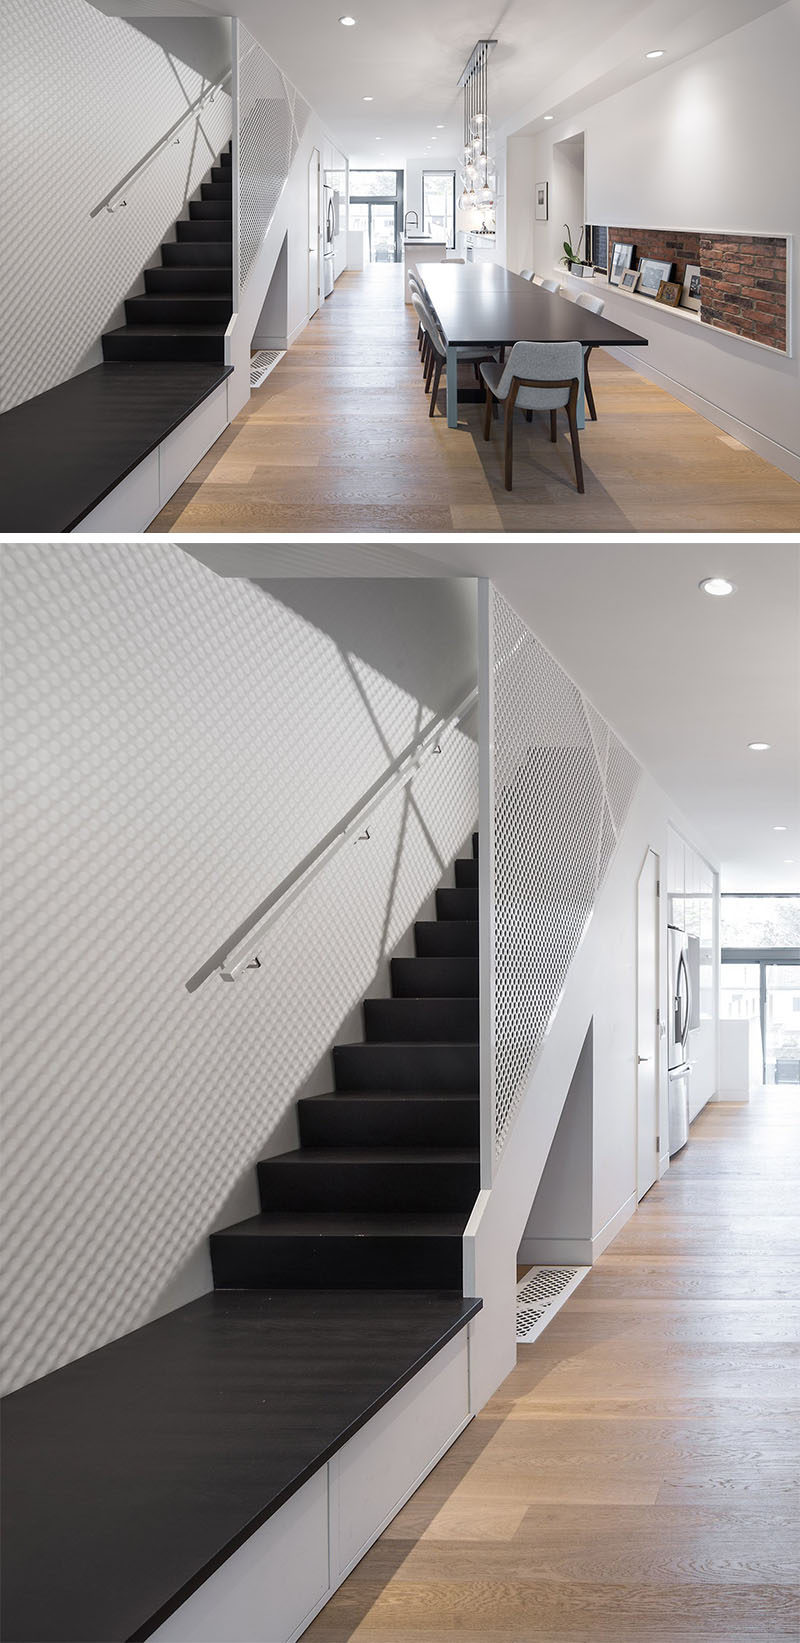 Stairs Design Ideas - This home has three hidden drawers located under the stair landing that are perfect for storing shoes and dog toys.